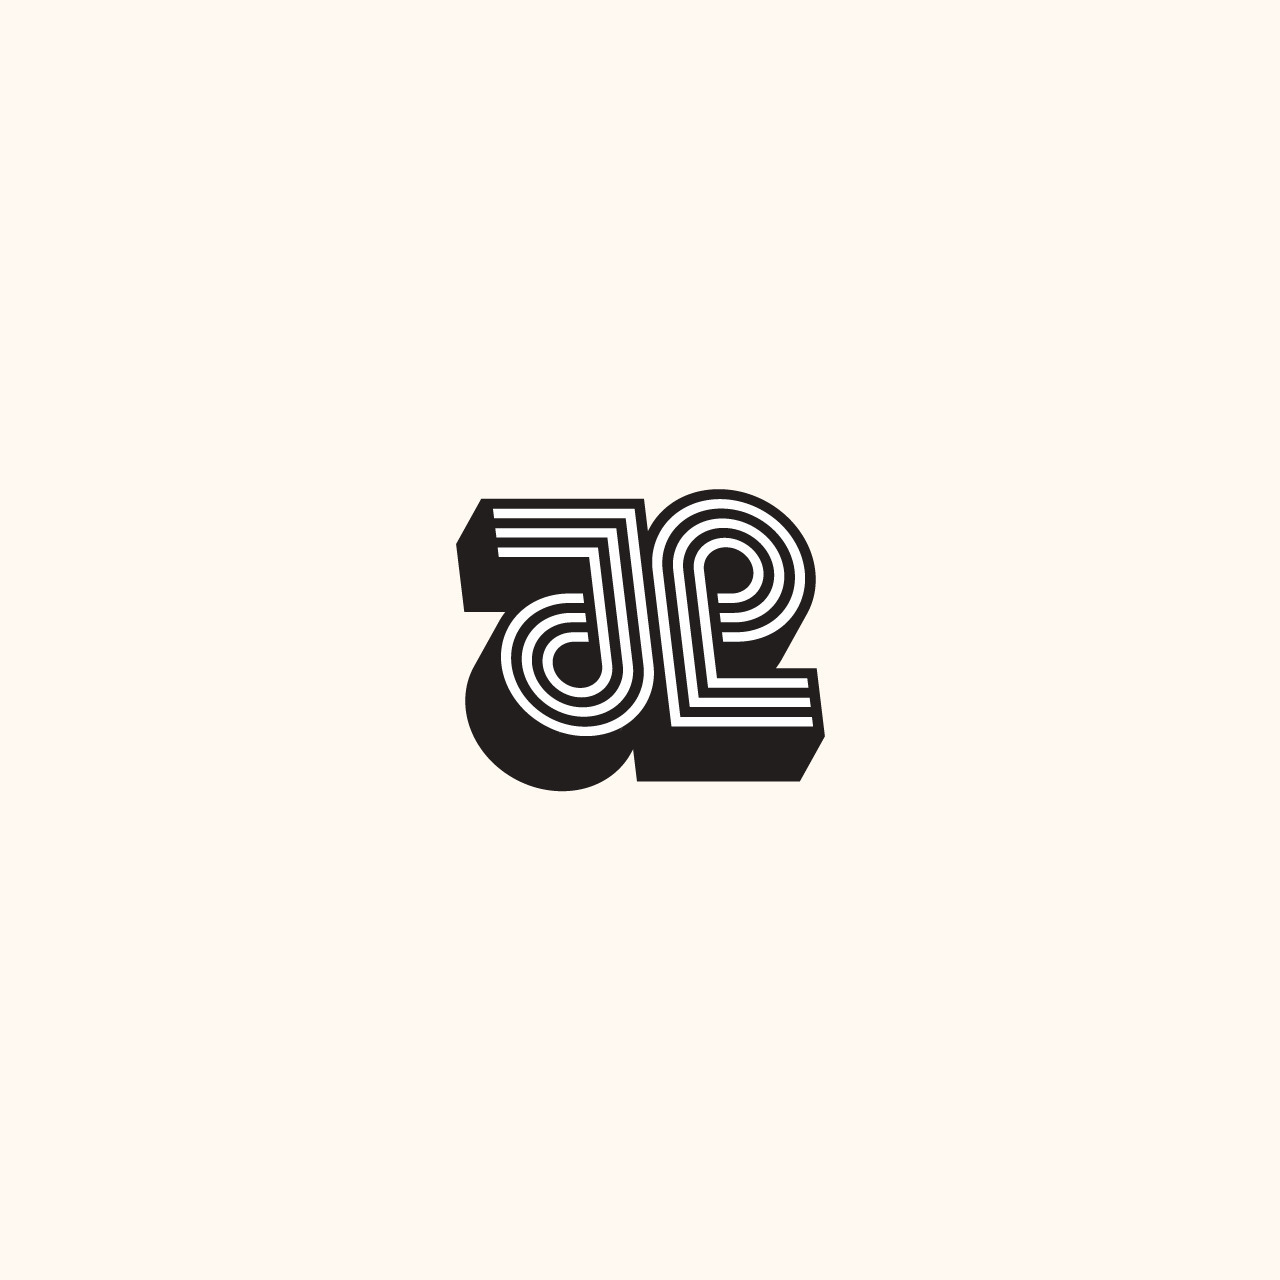 Logo design JP, alternative per - jessepyysalo | ello